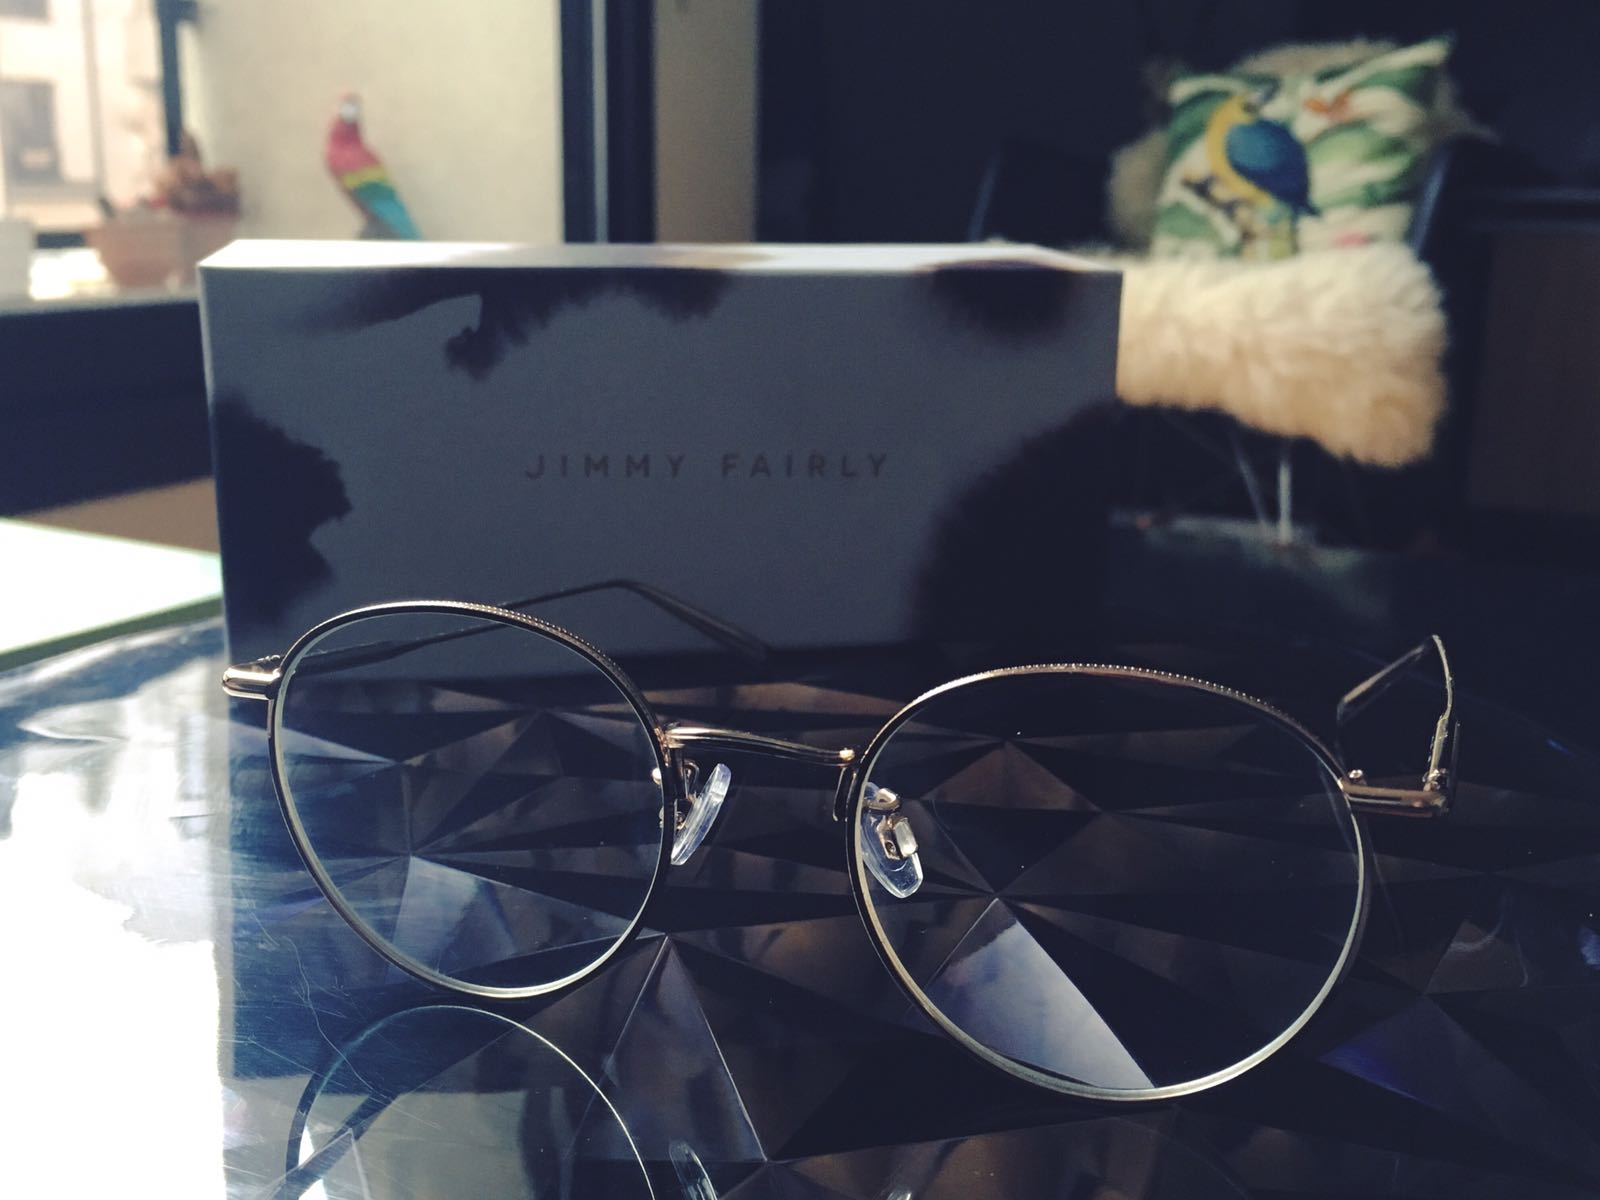 lunettes-monture-fine-metal-doree-or-agrent-jimmy-fairly-7